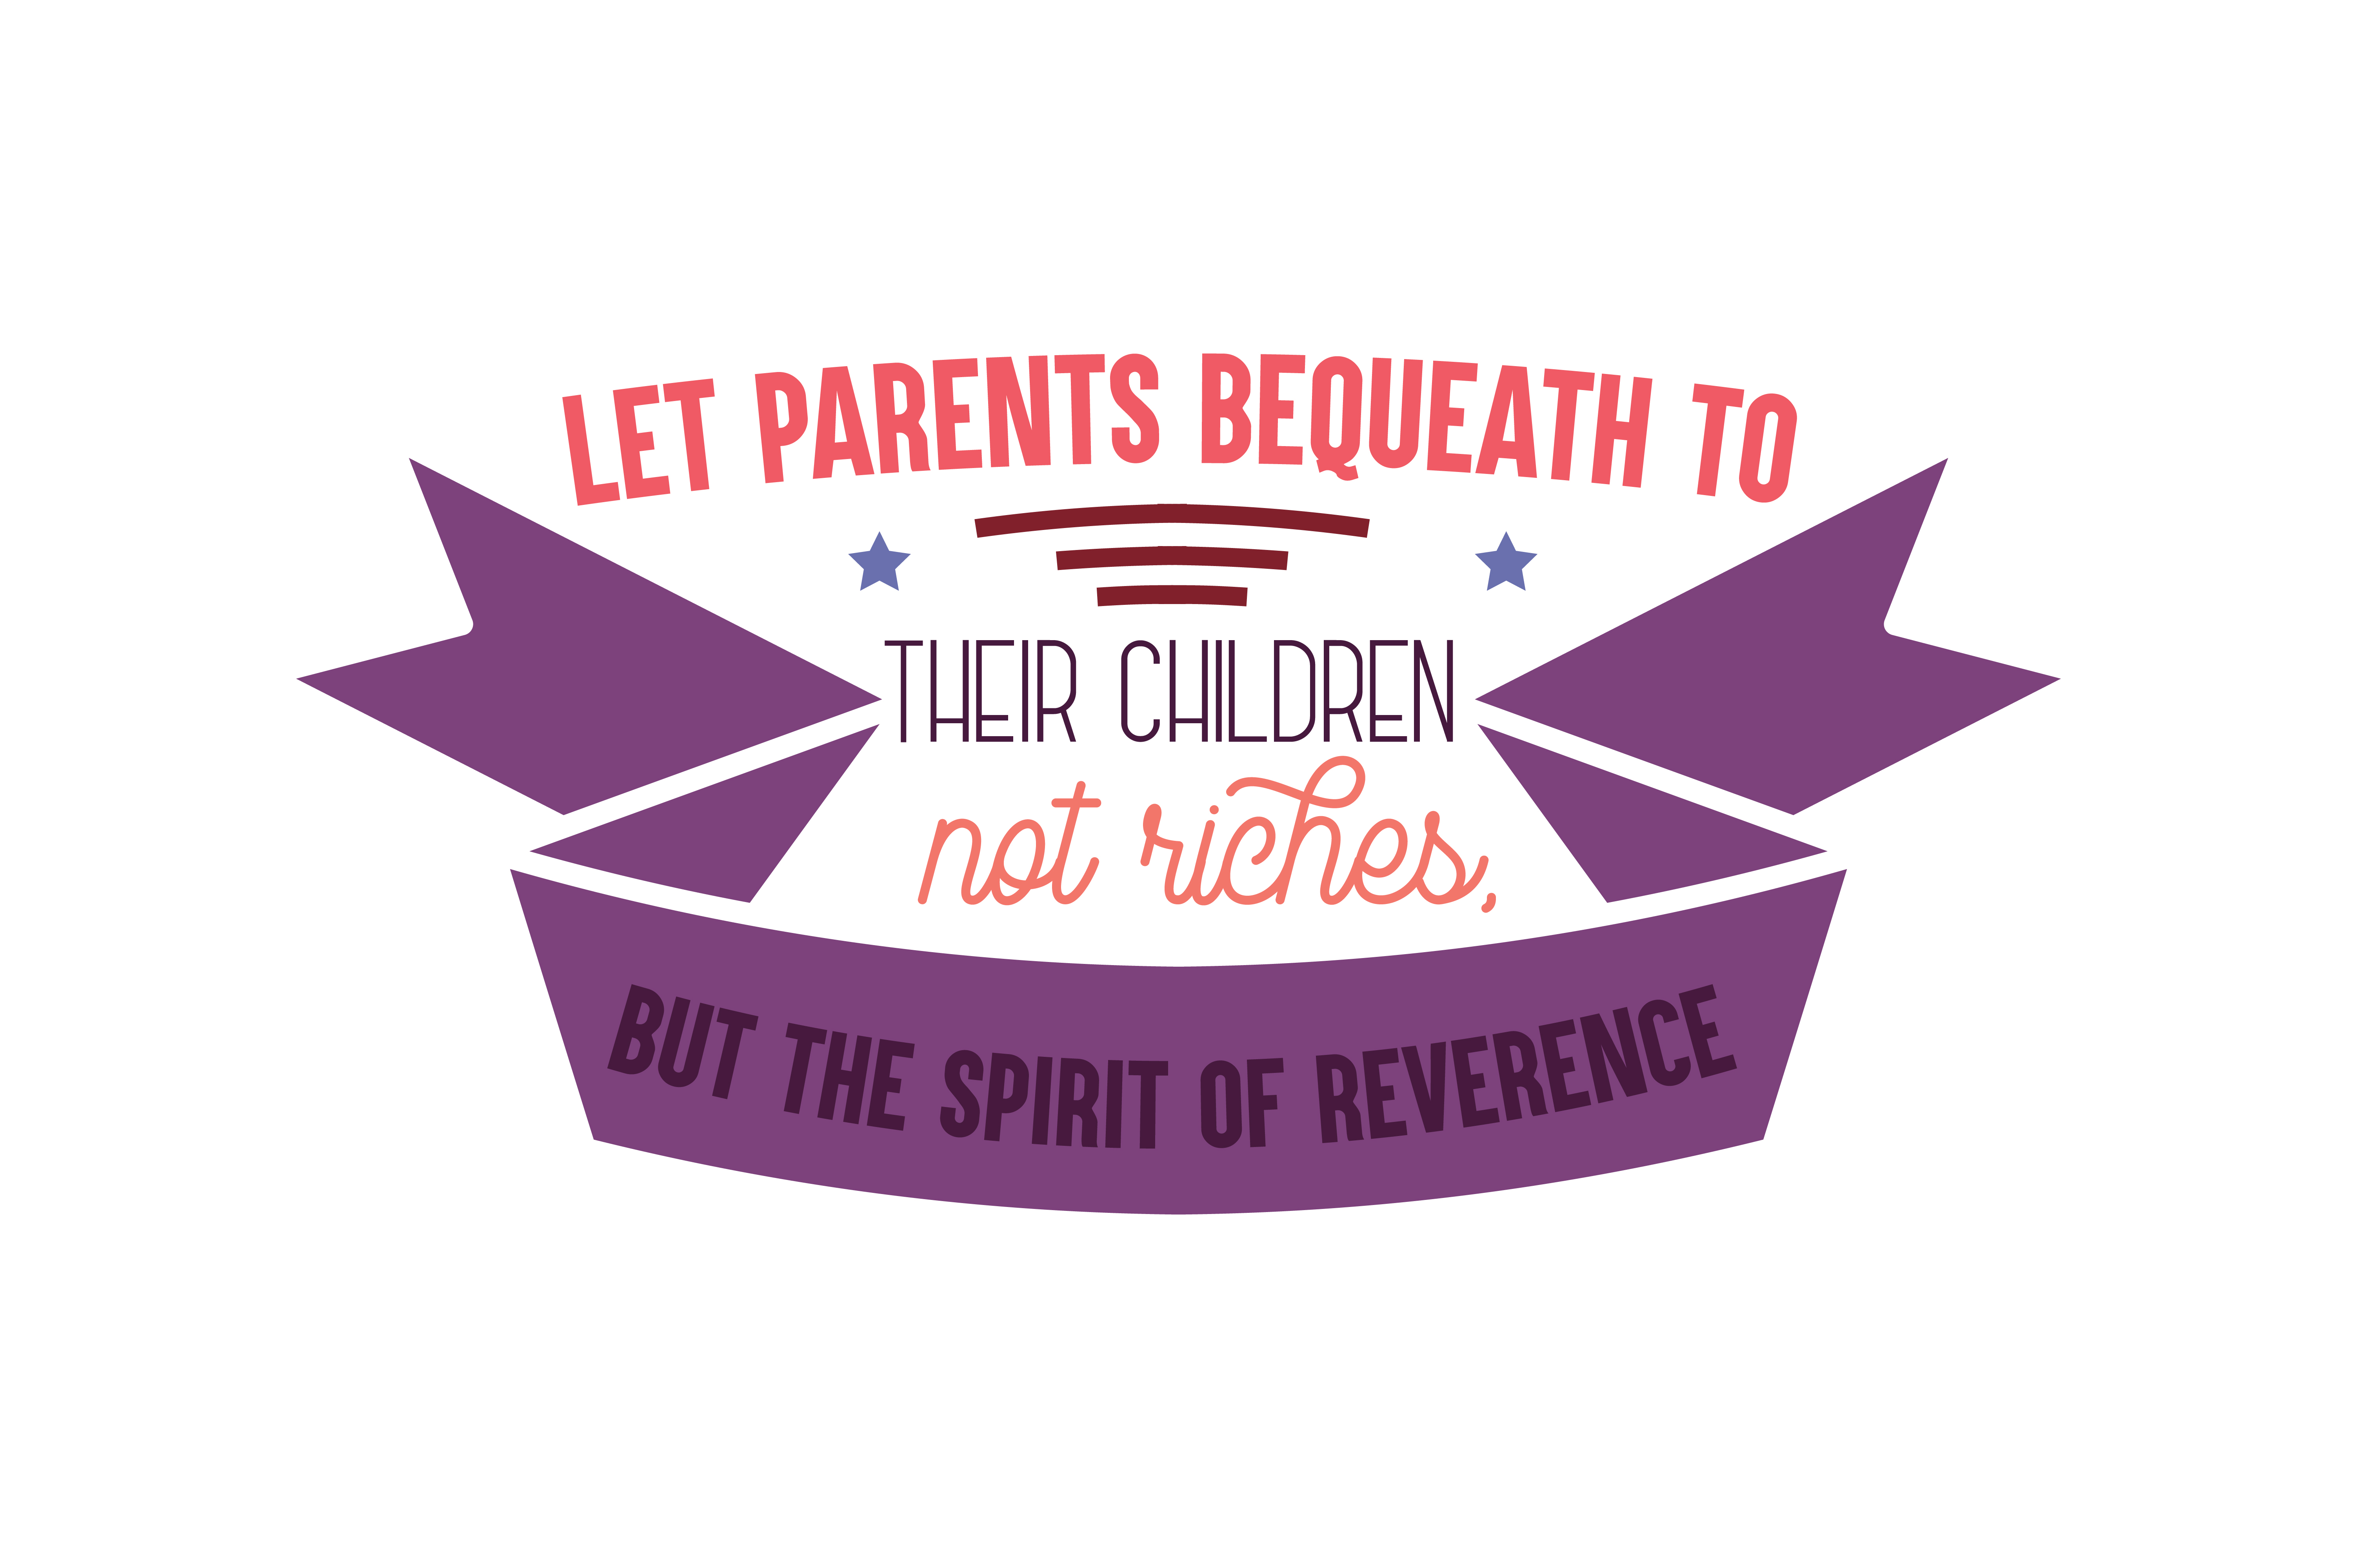 Download Free Let Parents Bequeath To Their Children Not Riches But The Spirit for Cricut Explore, Silhouette and other cutting machines.